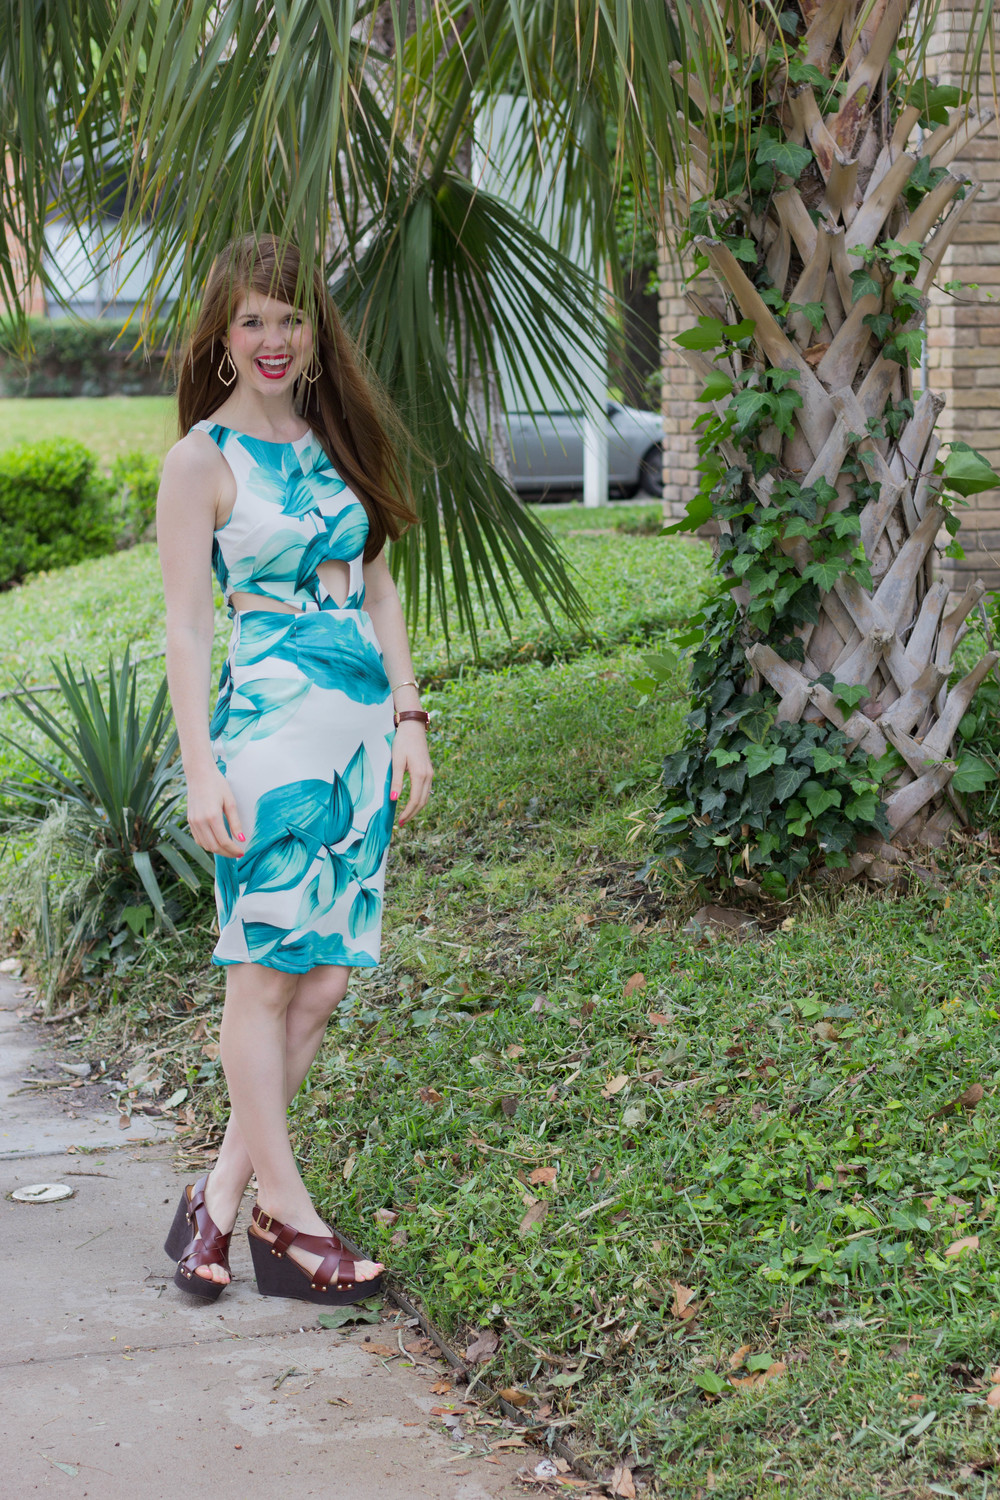 shop riffraff latiste by amy exotic midi palm tree dress, steve madden wedges, kendra scott sophee earrings, kate spade bangle, daniel wellington watch,